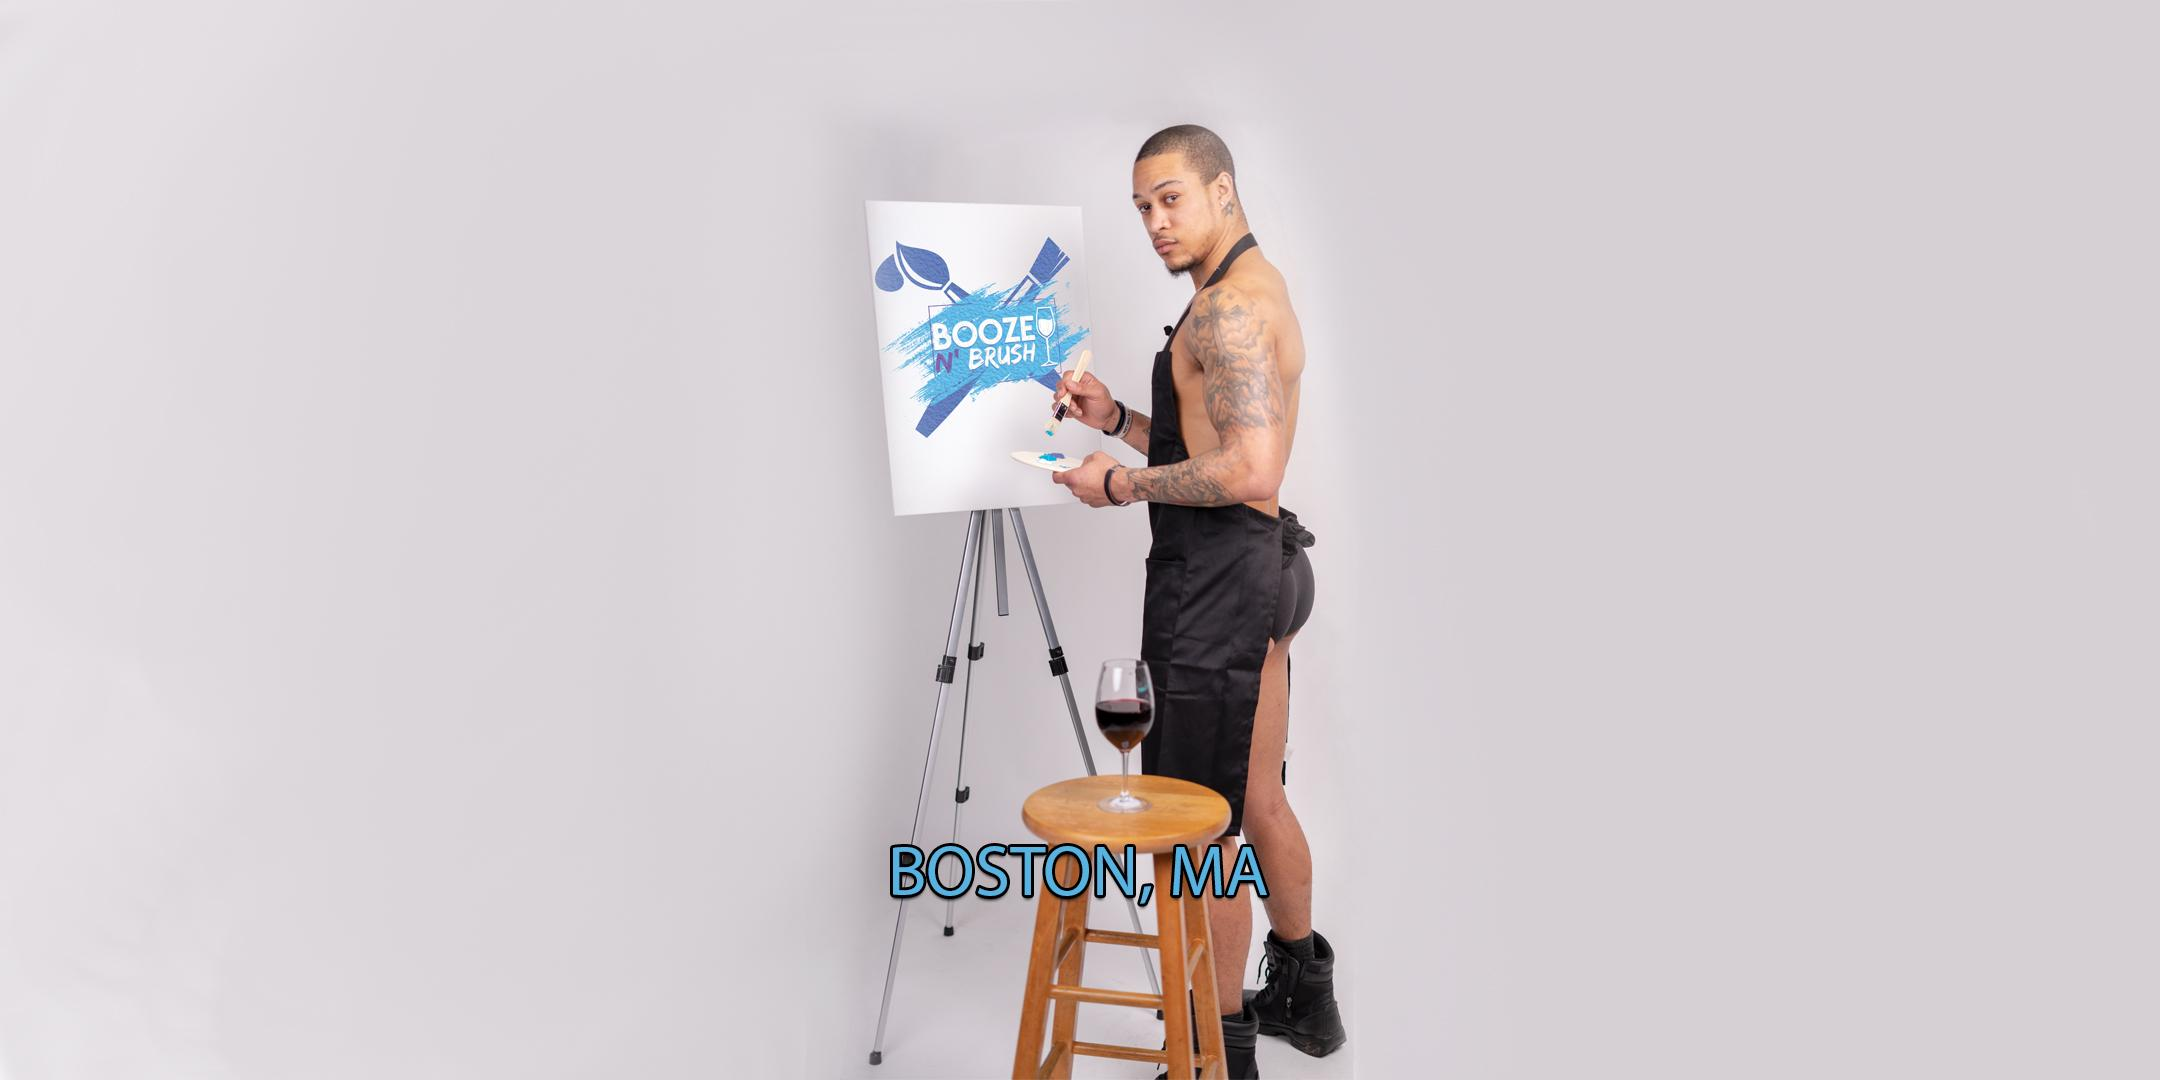 Booze N' Brush Next to Naked Sip n' Paint Boston, MA - Exotic Male Model Painting Event